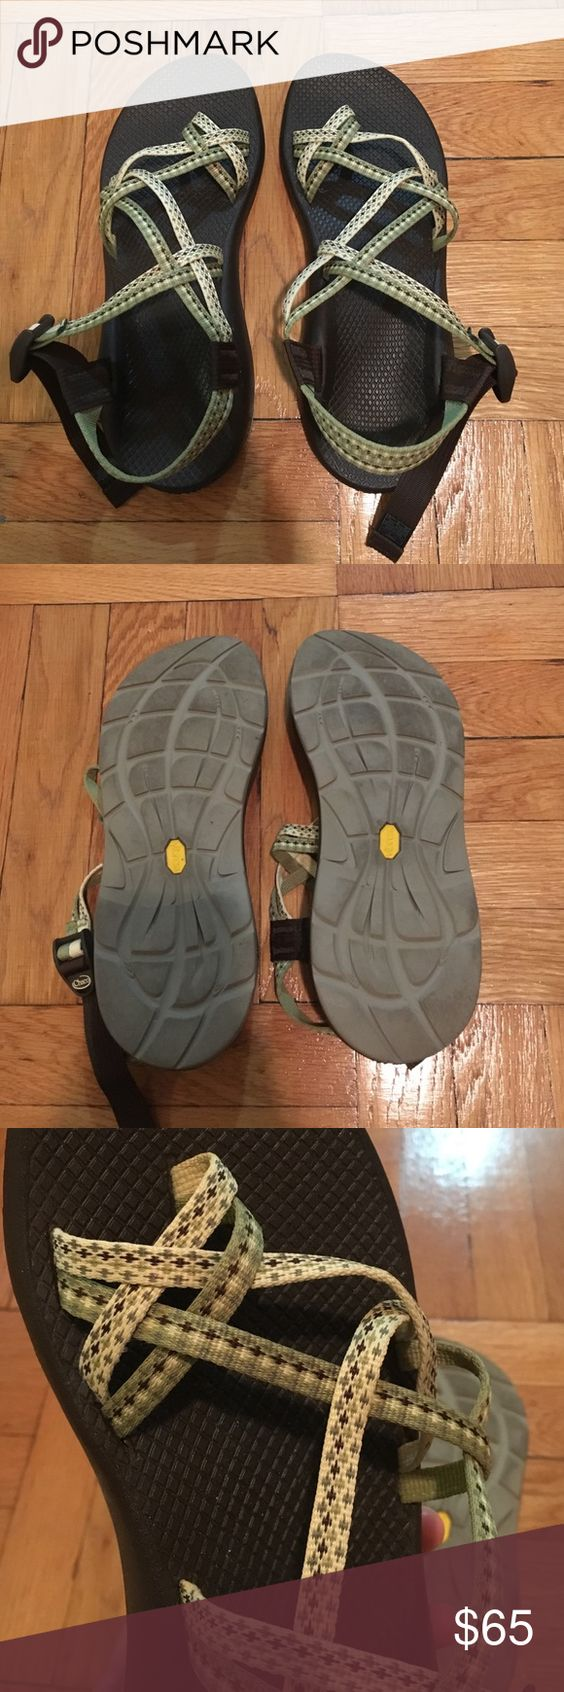 Sandals or shoes for hiking - Chaco Sandals Super Cute Chaco Sandals That Are Perfect For Hiking Or Hanging Out Only